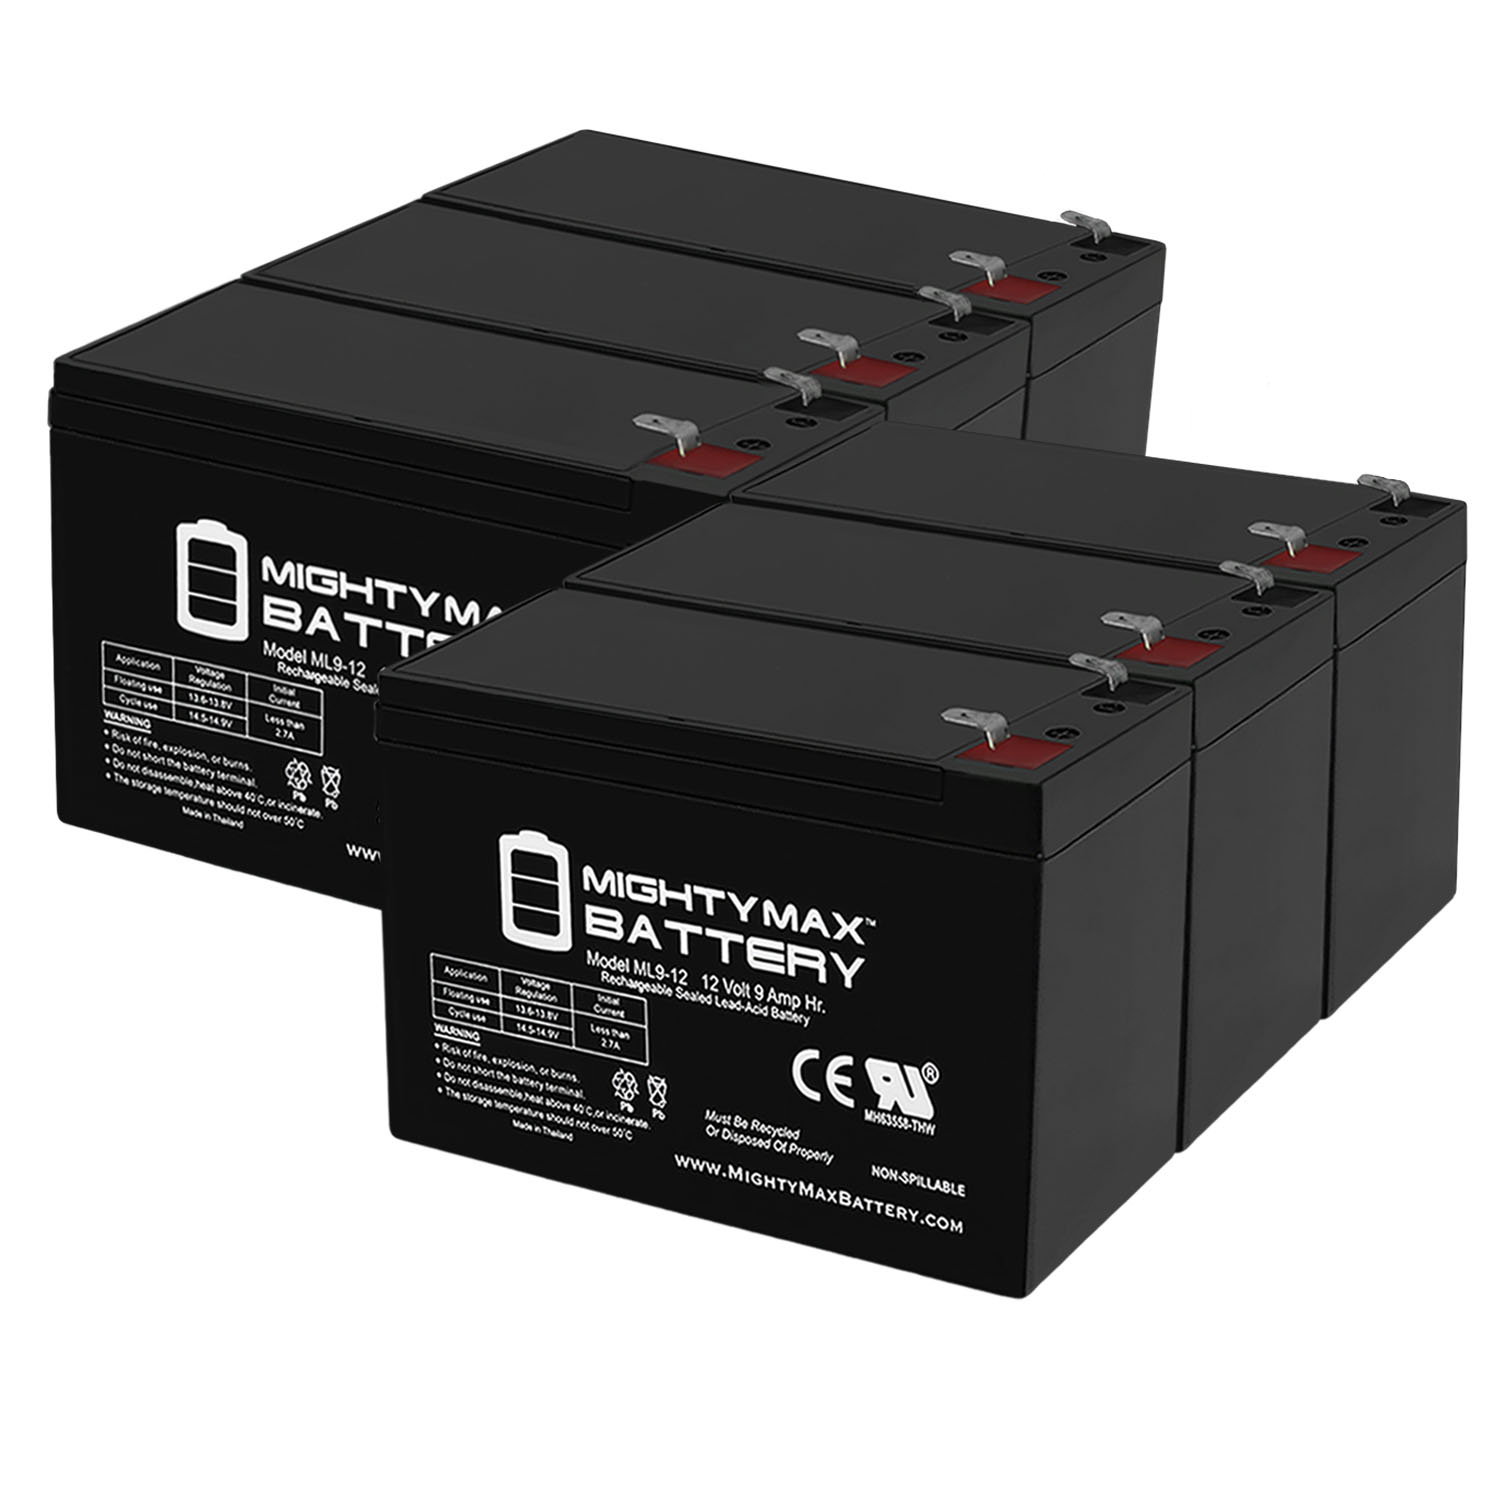 12V 9AH for Razor e200 / e200s / e225 / e300 / e300s / e325 - 6 Pack